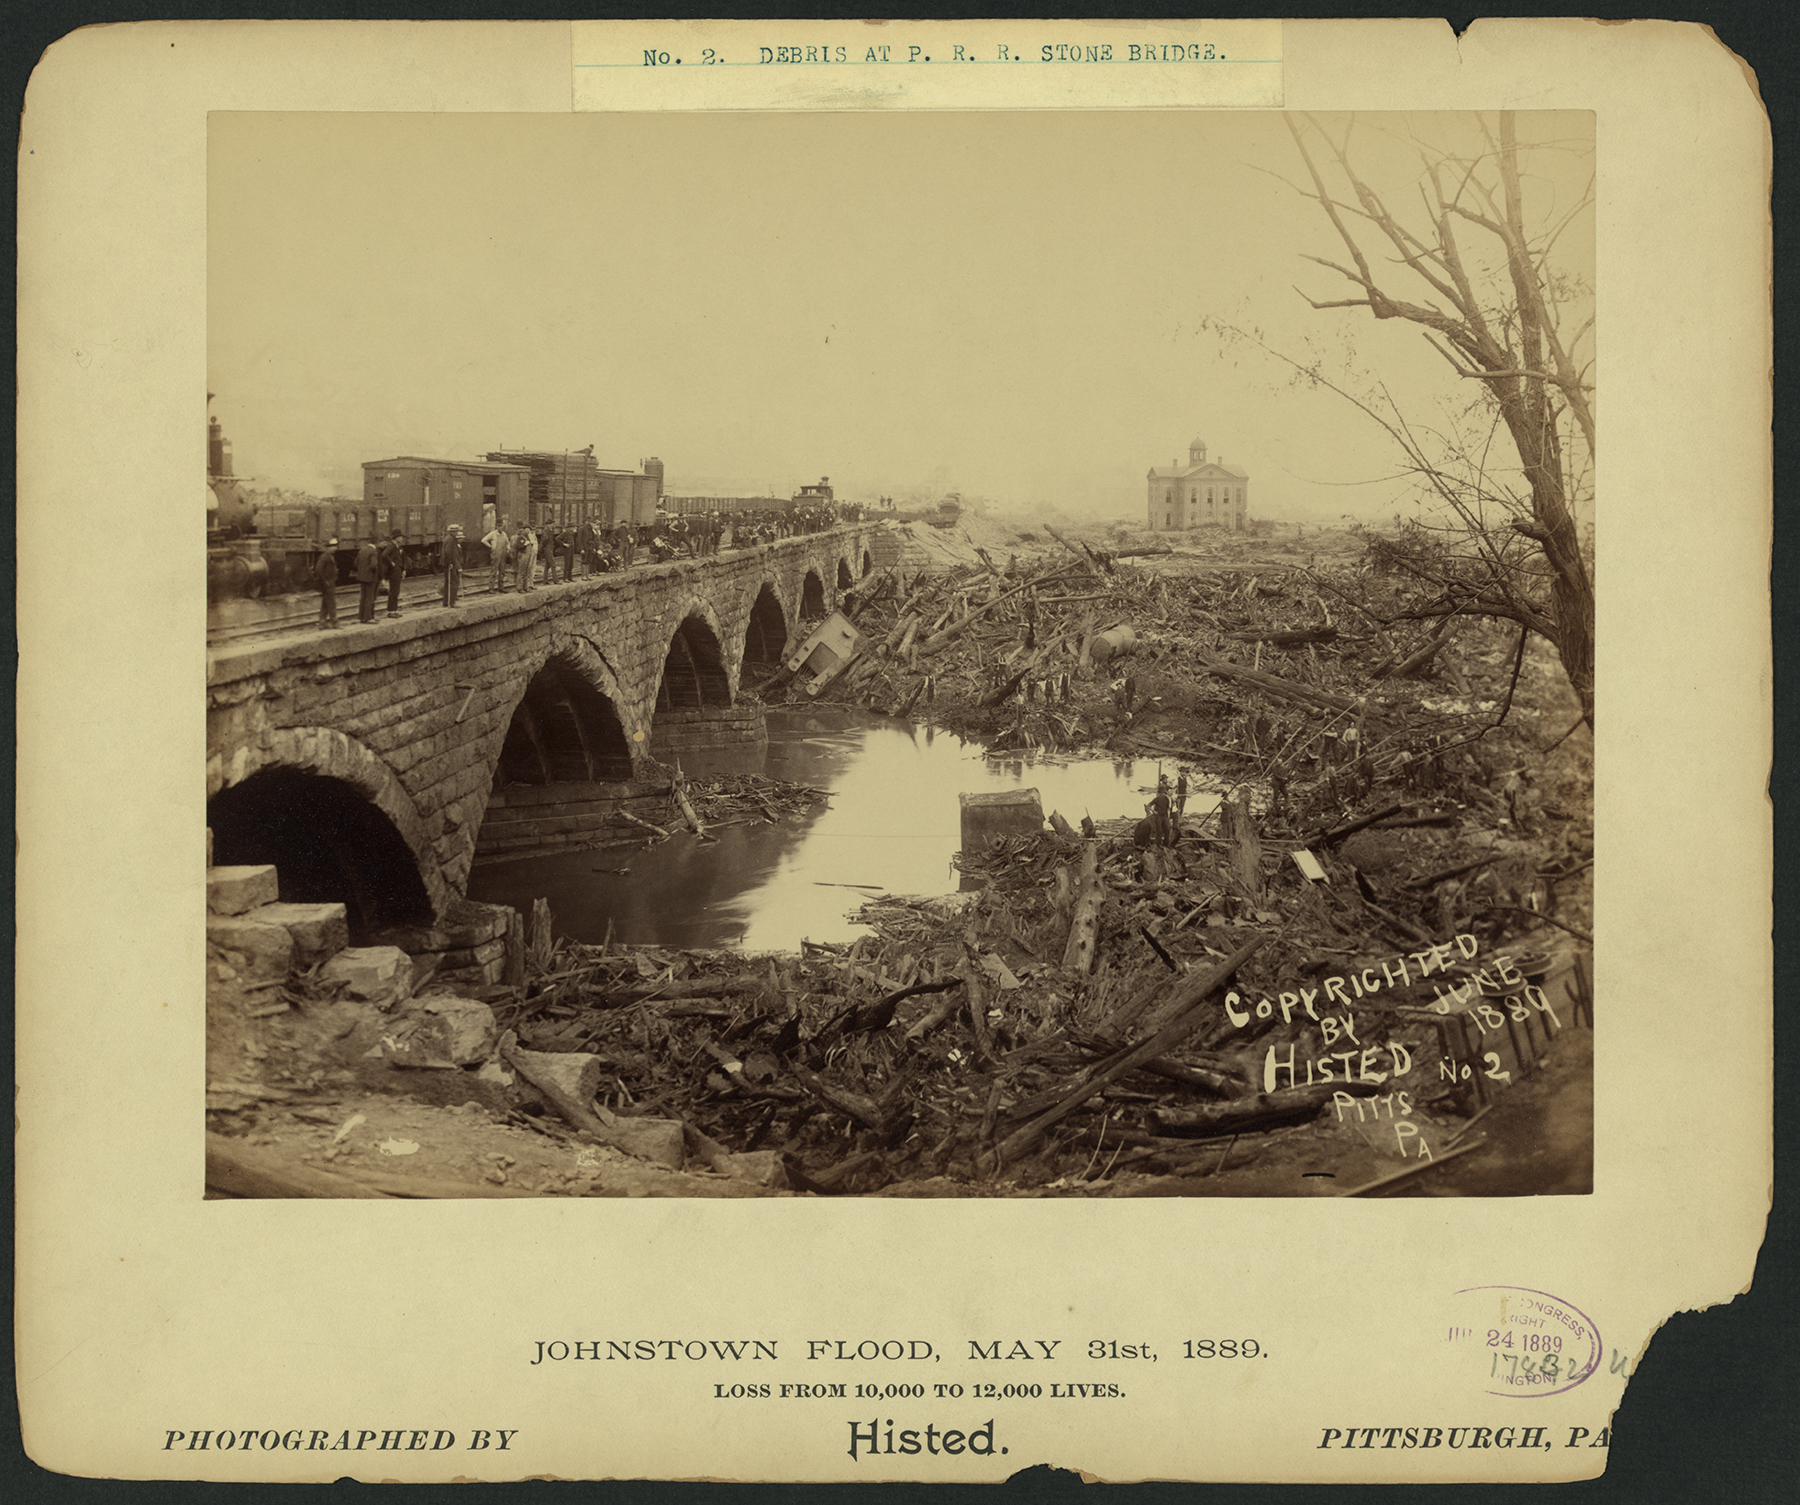 "The great stone bridge on the Pennsylvania Railroad's main line played a large role in the devastation during the flood when debris washed across the valley piling up against the bridge creating an unintended dam, trapping flood victims in a 70' high debris pile that burned for three days. After the fire and flood water subsided clearing of the bridge required the expertise of ""Dynamite Bill"" Flynn and a 900 man crewtaking 3 months to complete the task. Photograph by Ernest Walter Histed, collection of the Library of Congress."